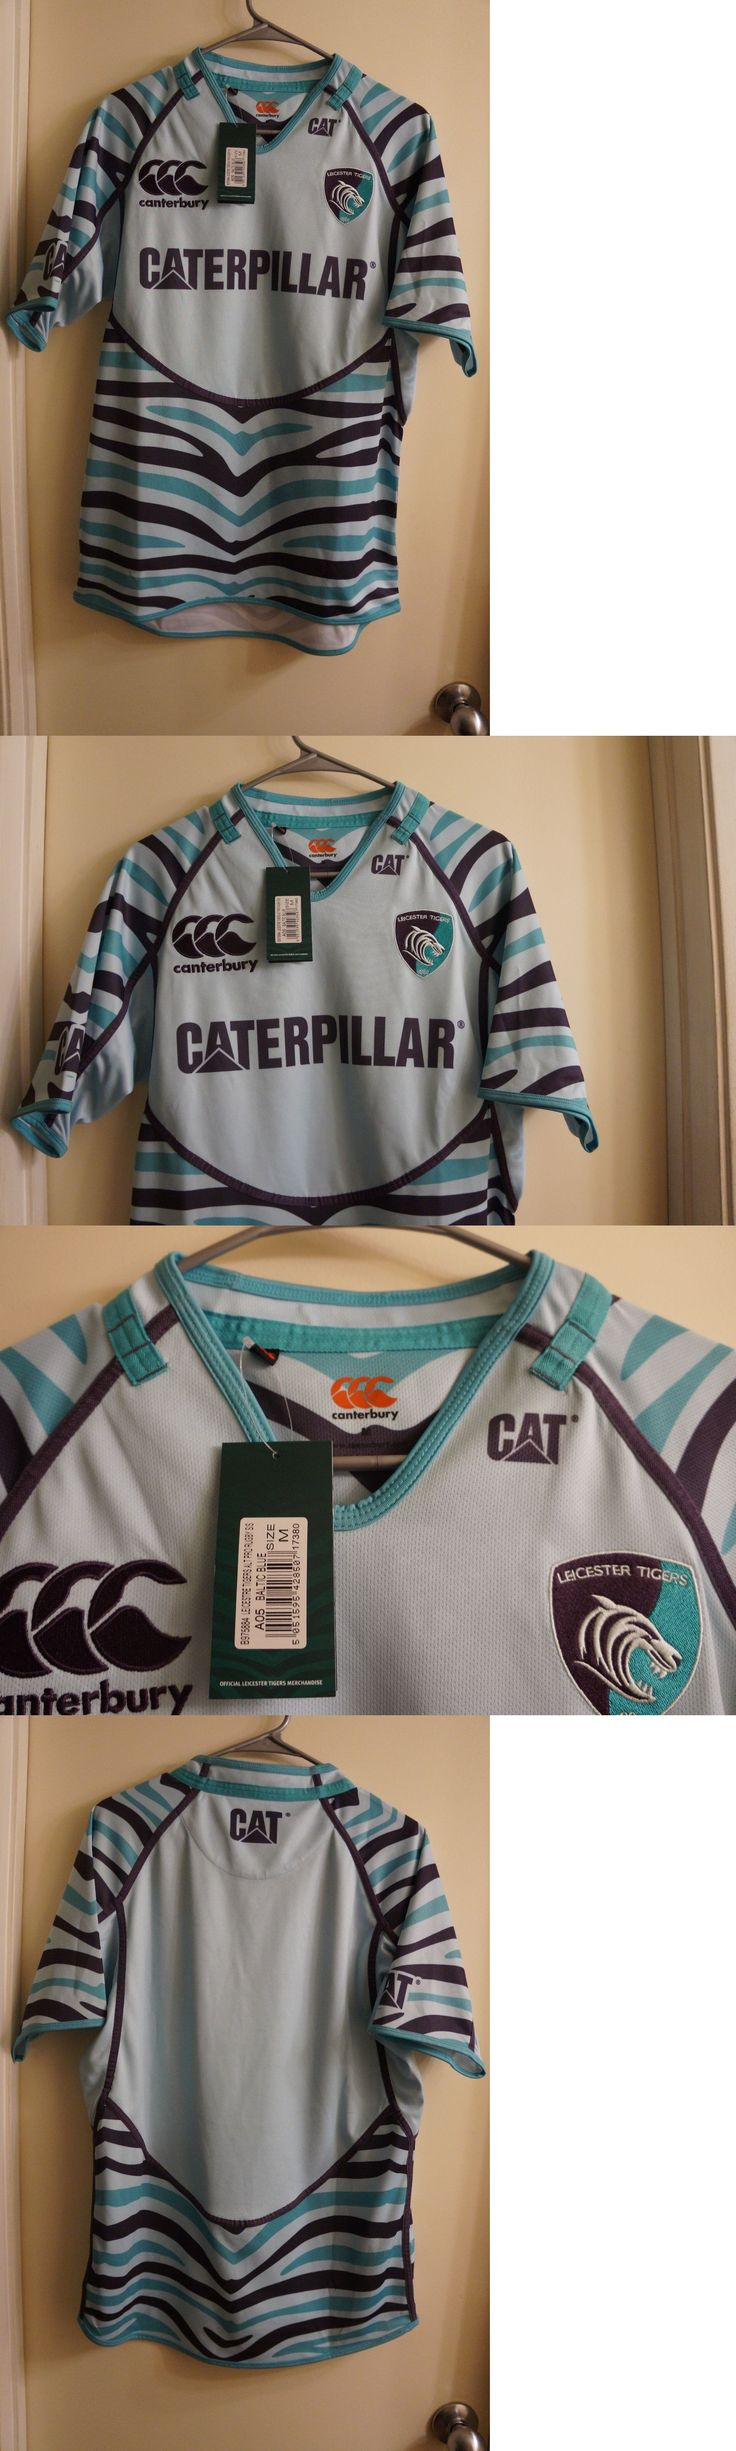 Rugby 21563: New Leicester Tigers Original Away Jersey Shirt Canterbury Size M Pro Rugby -> BUY IT NOW ONLY: $34.99 on eBay!